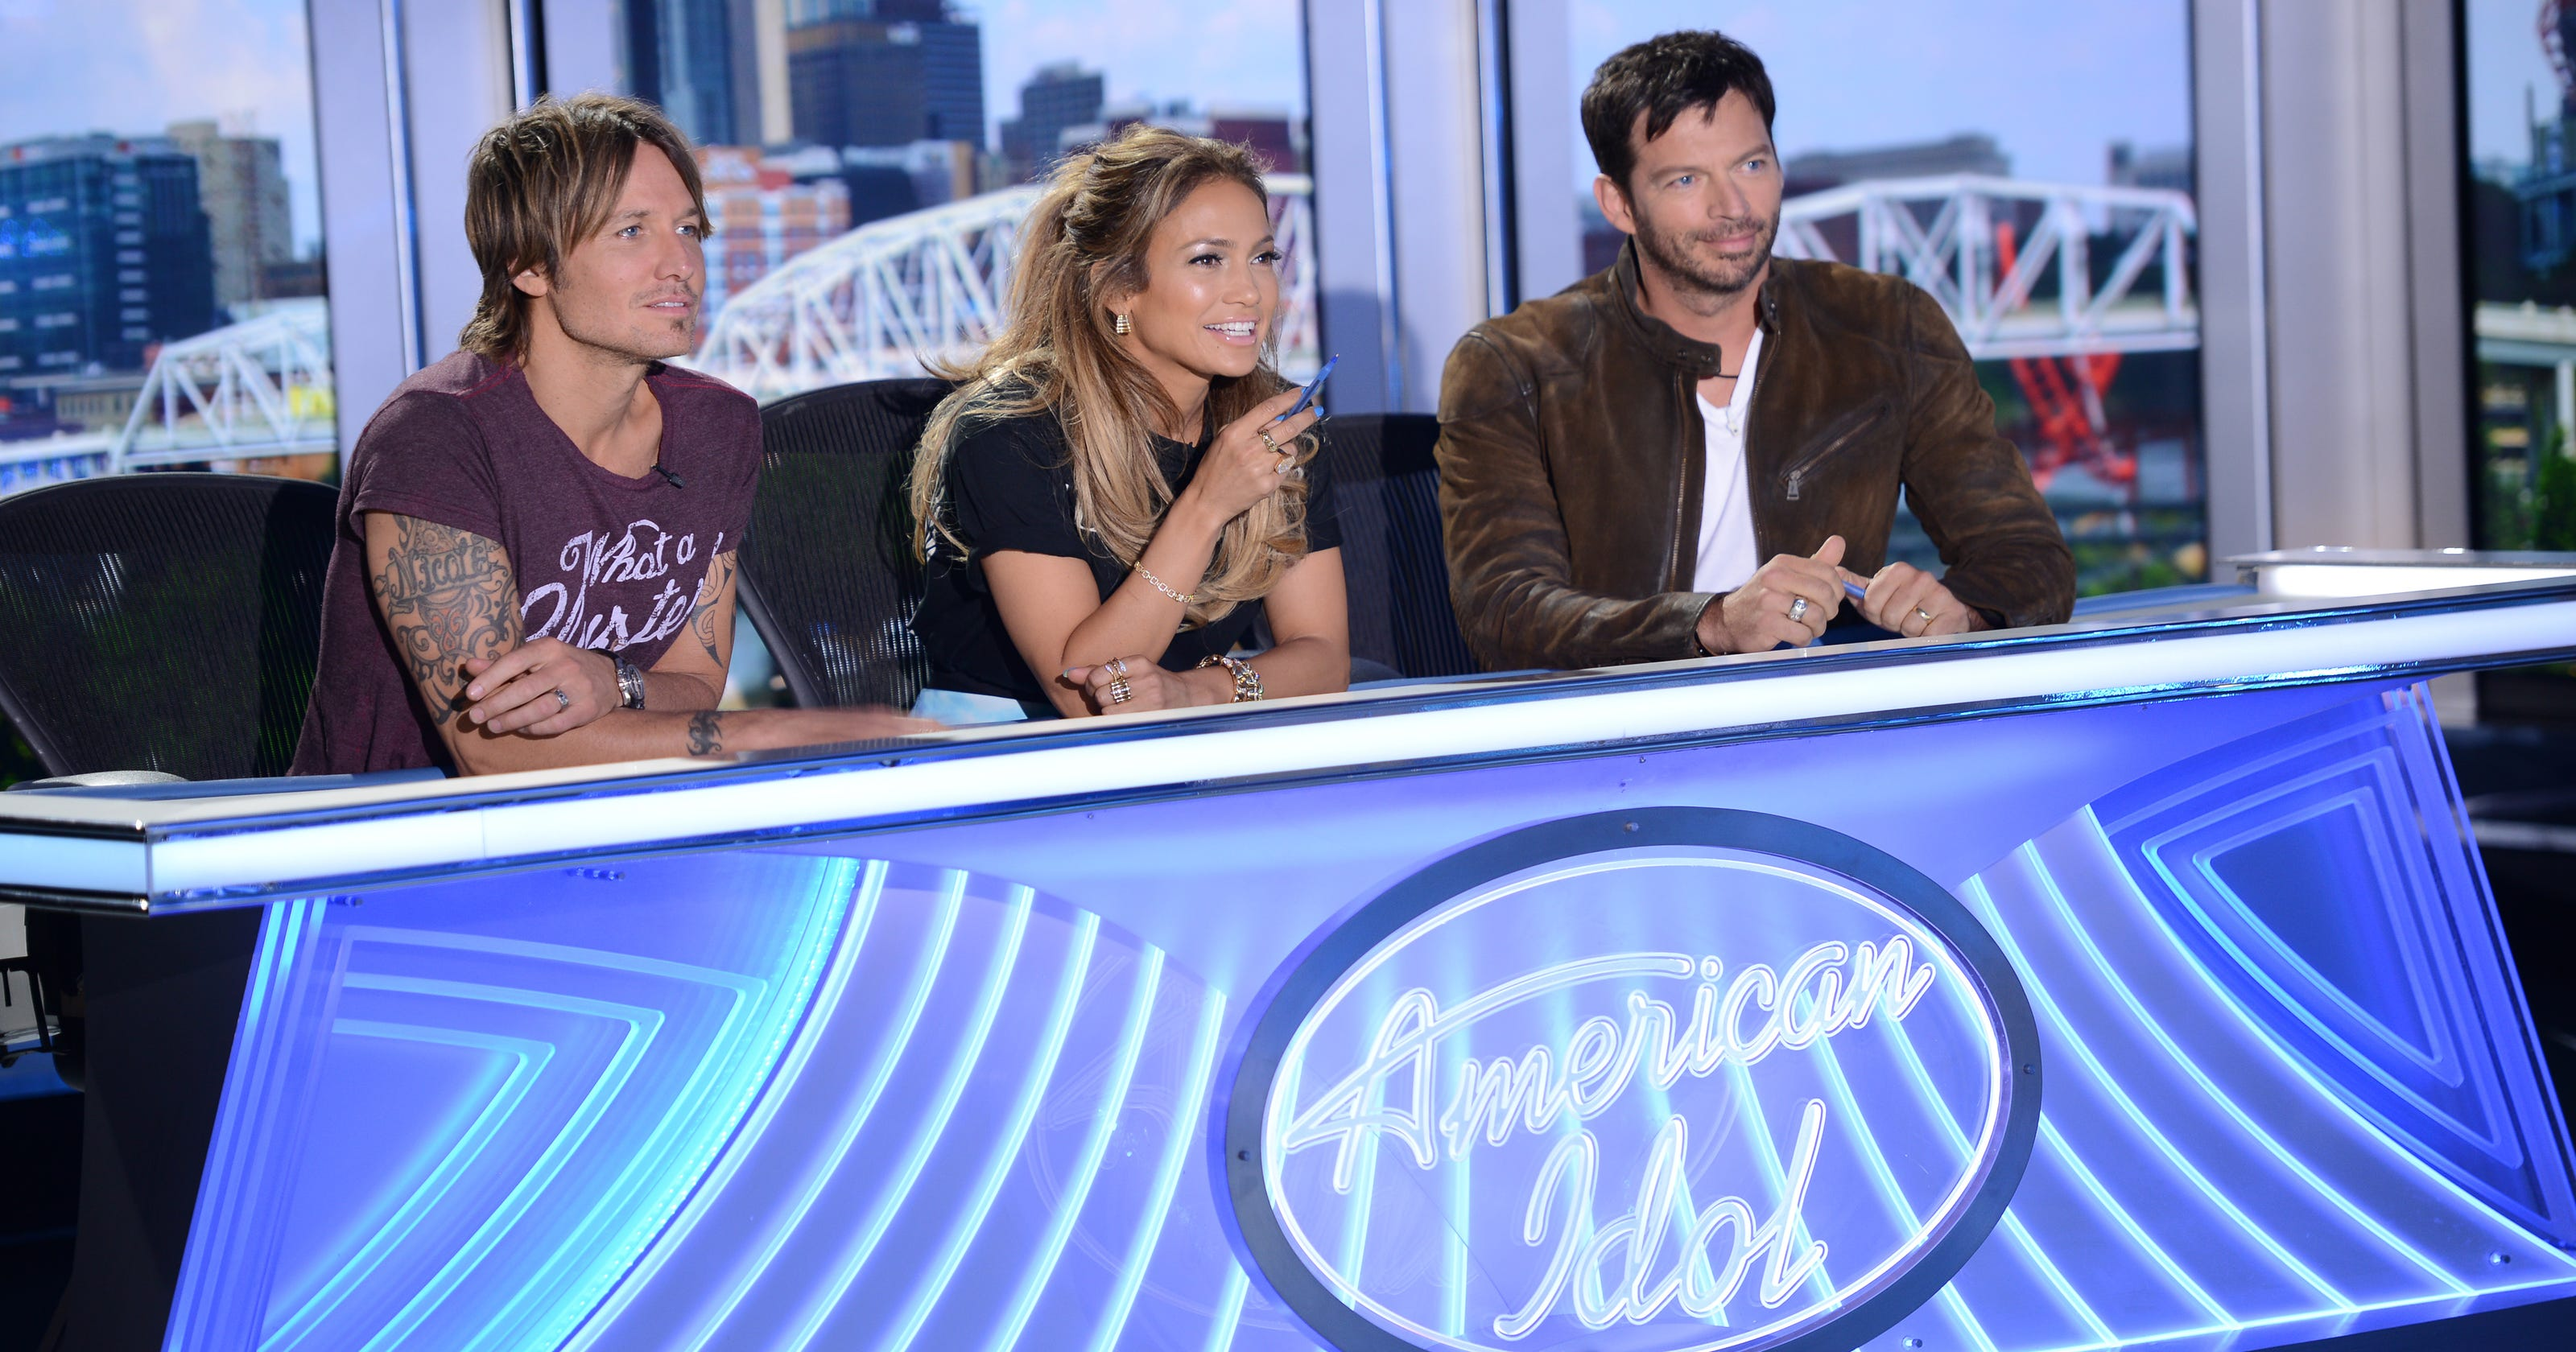 american idol' to be eliminated after 2016 season